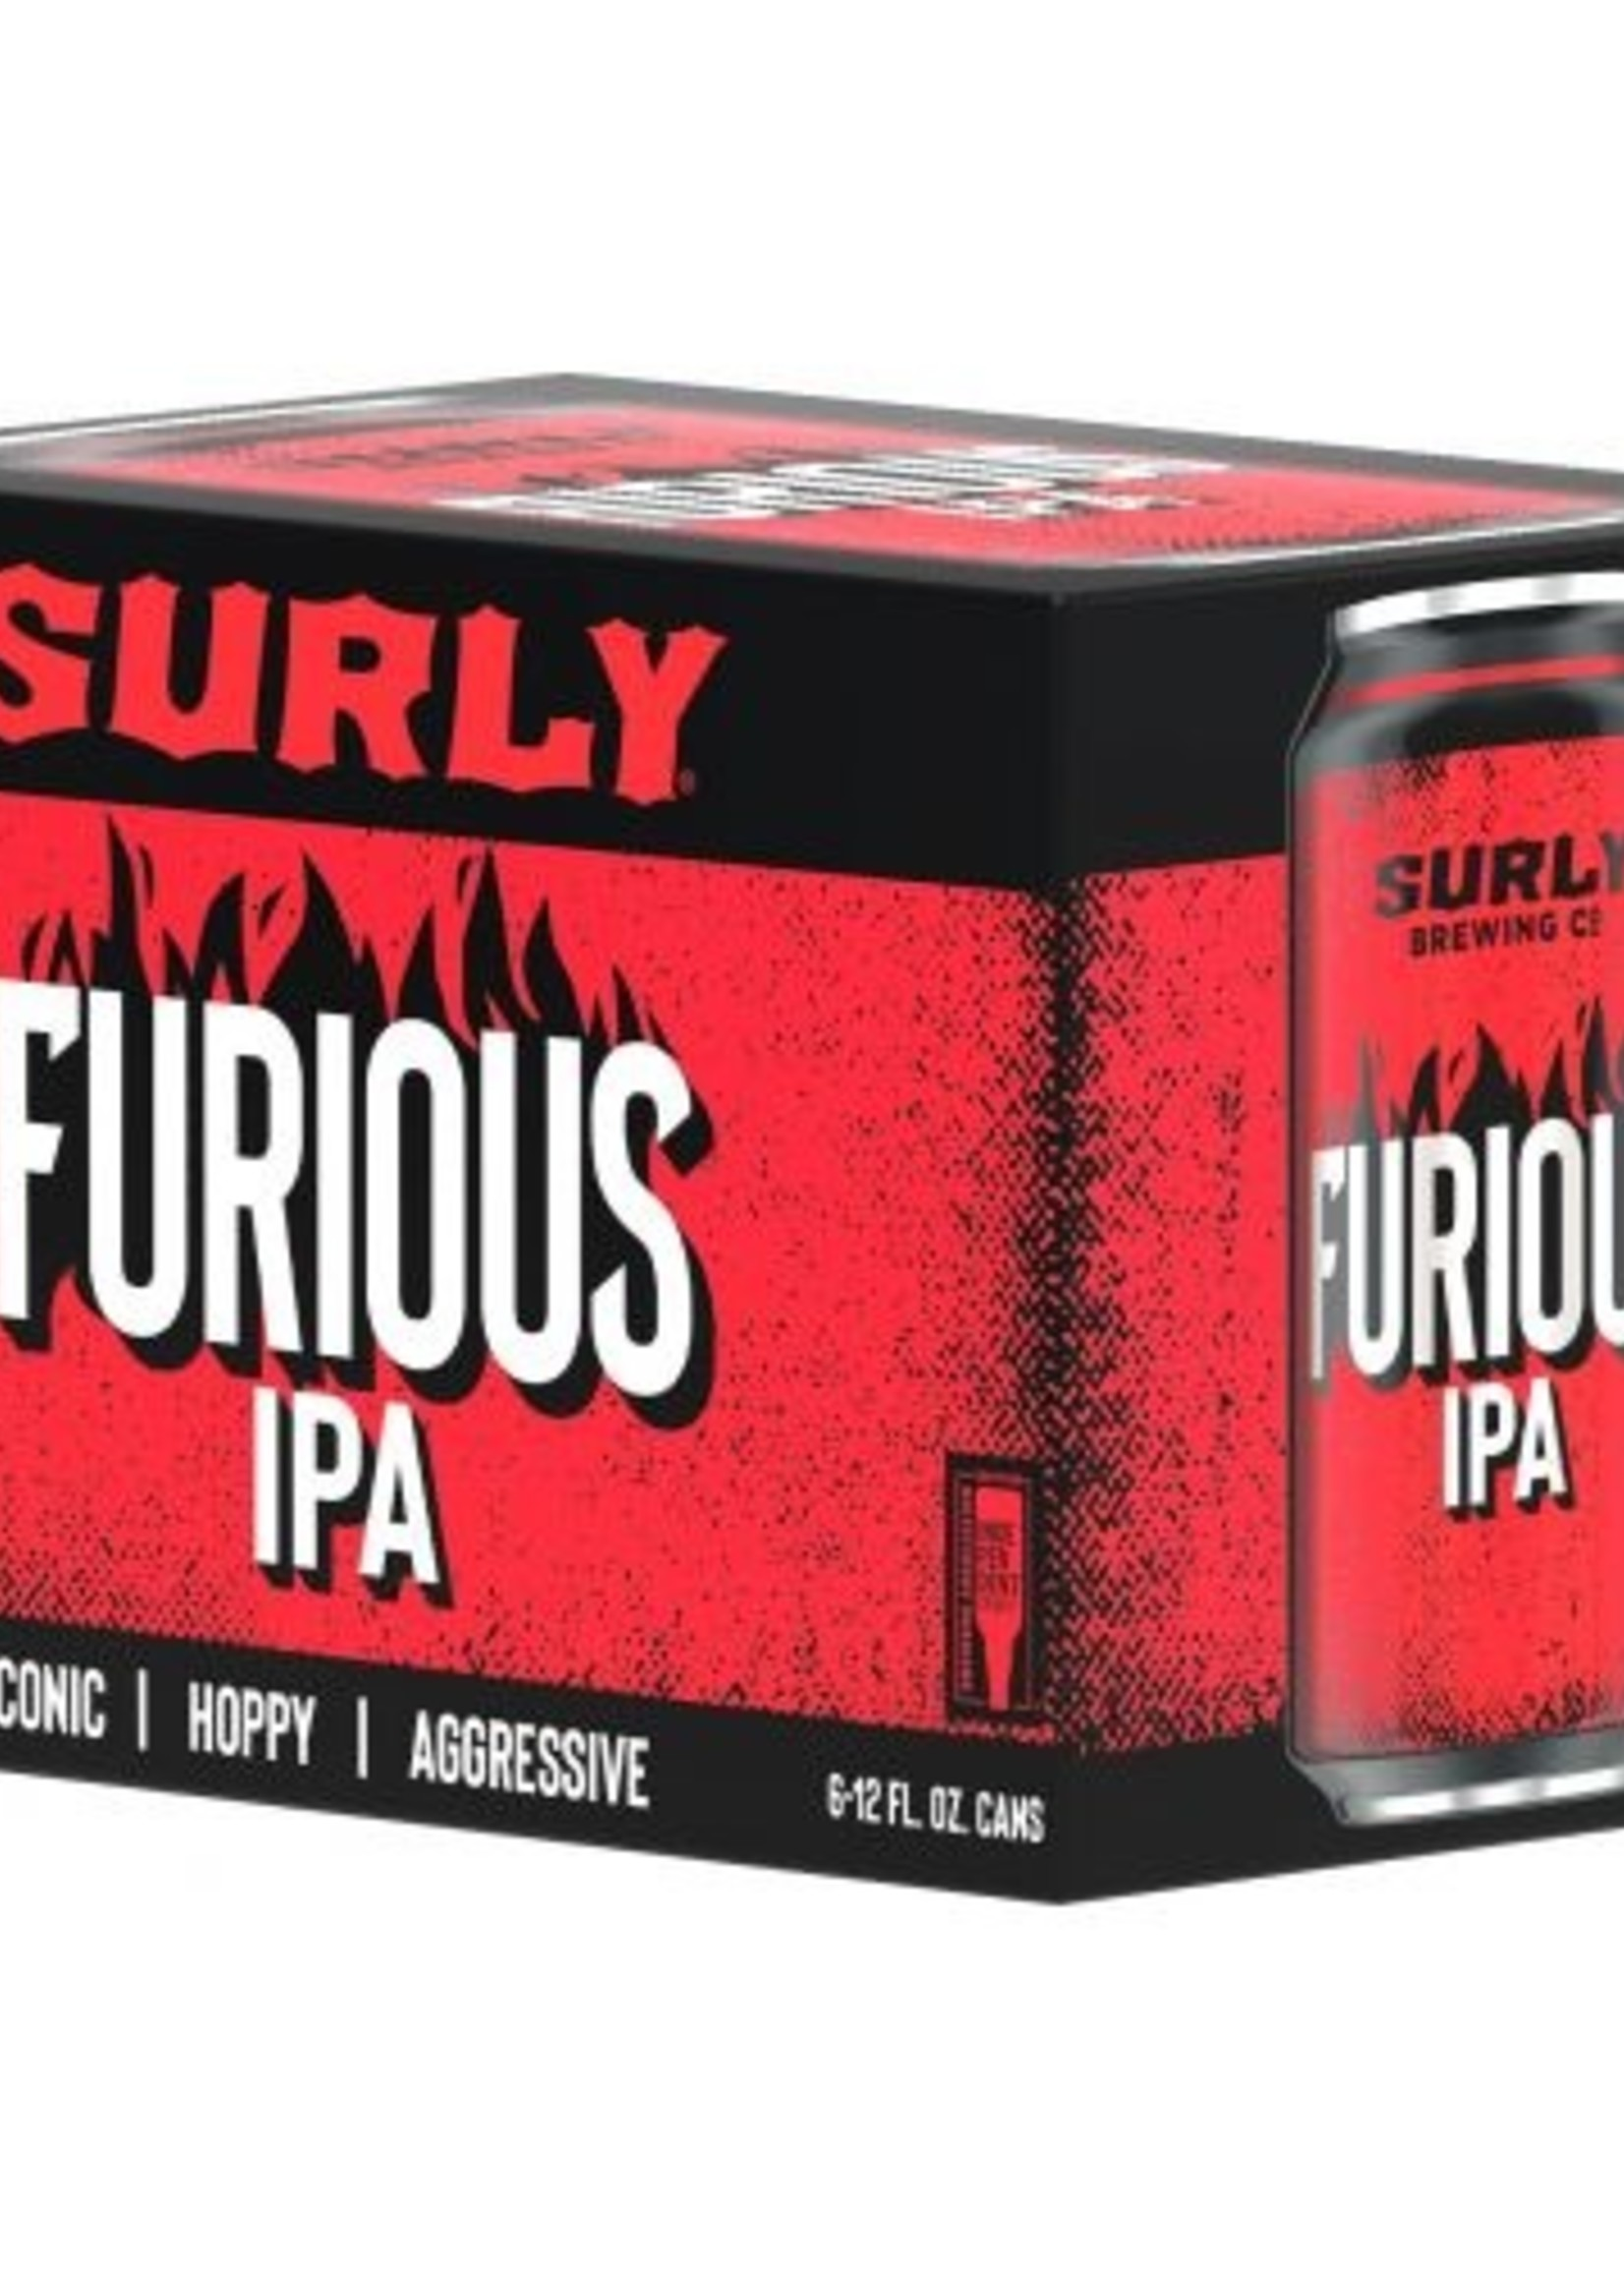 Surly Furious - 4x16oz Cans